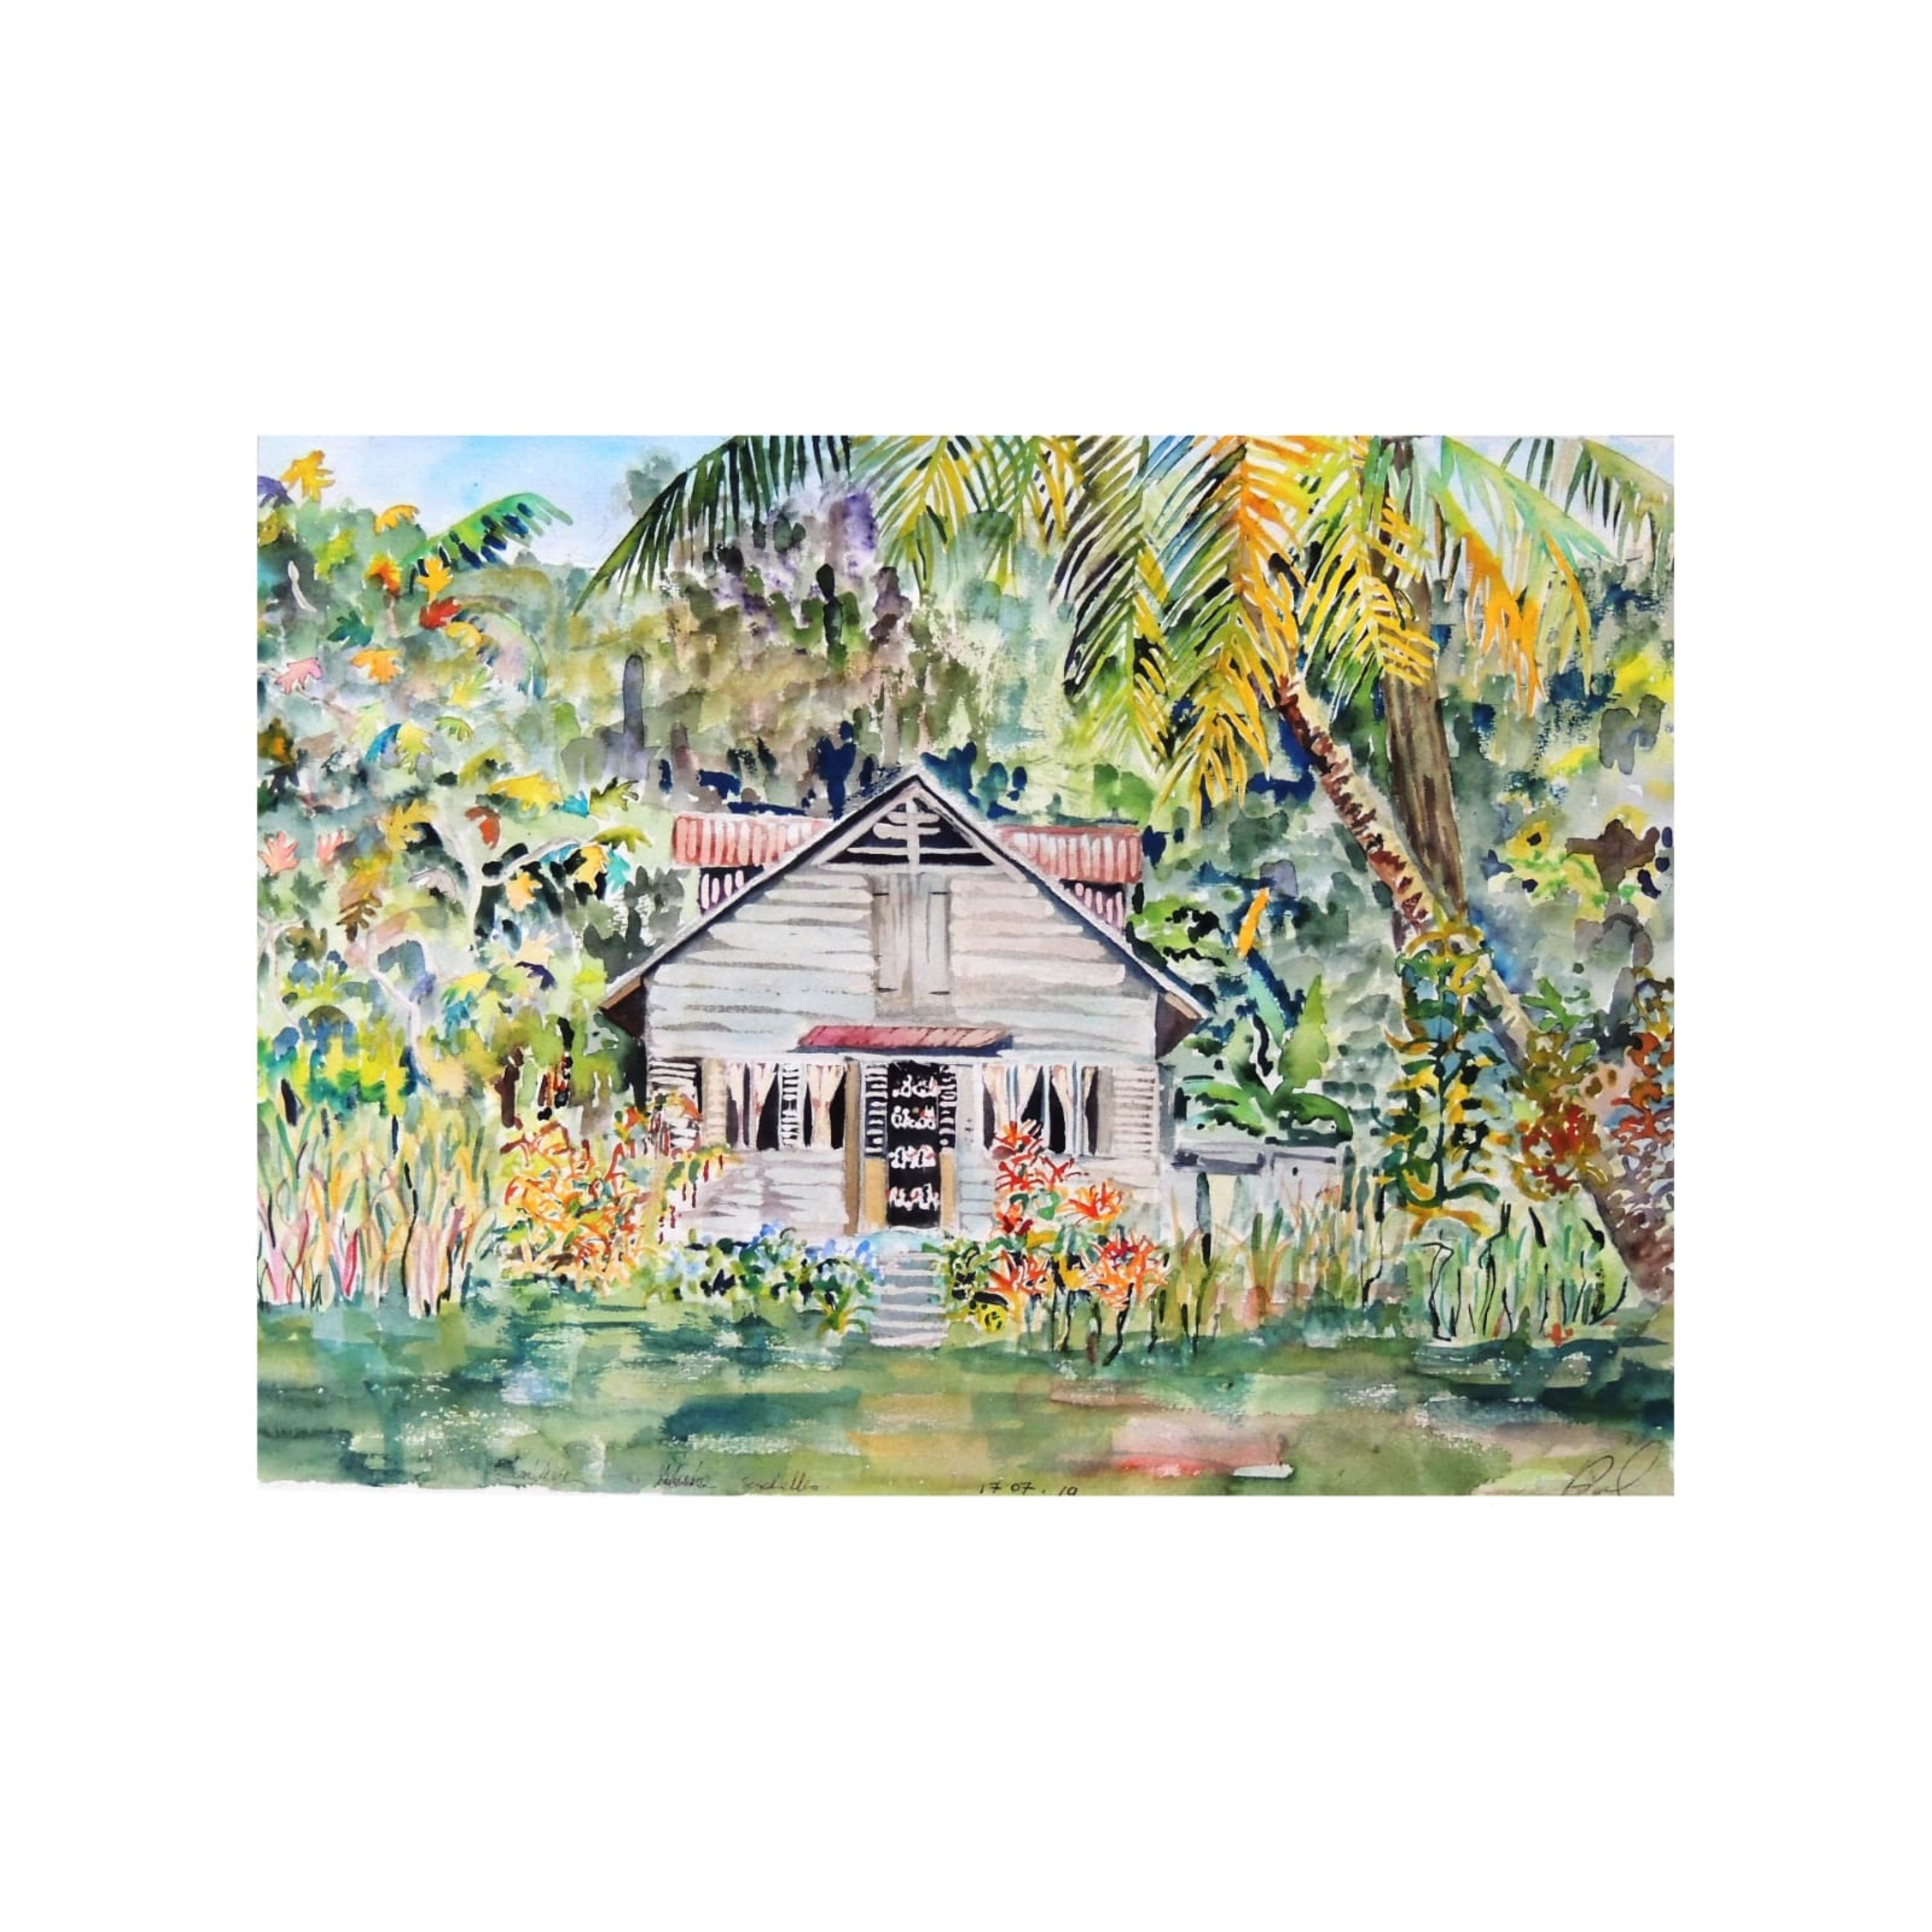 Creole Home in the Forest